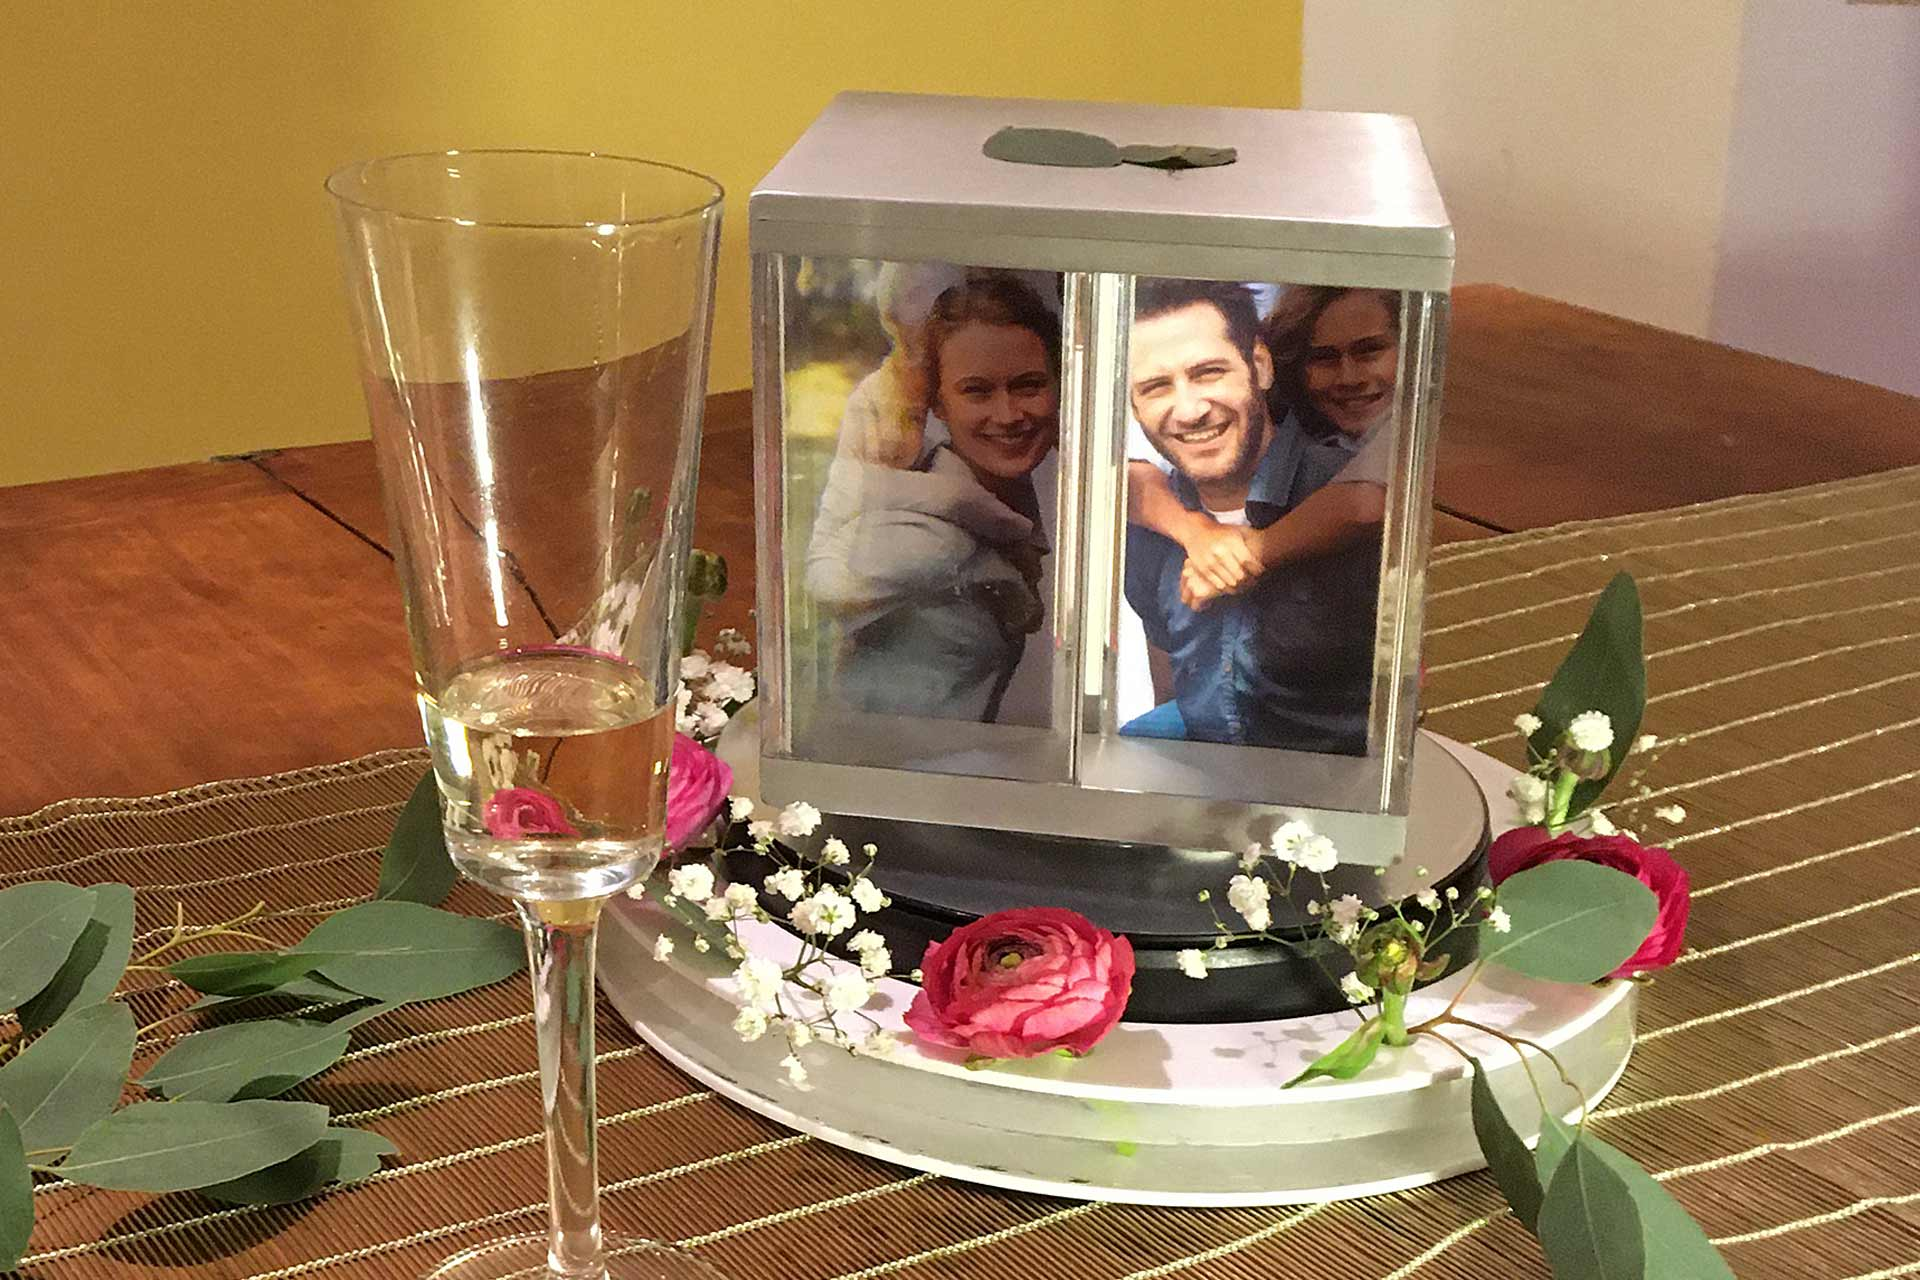 PixCube photoCube with flowers as decoration